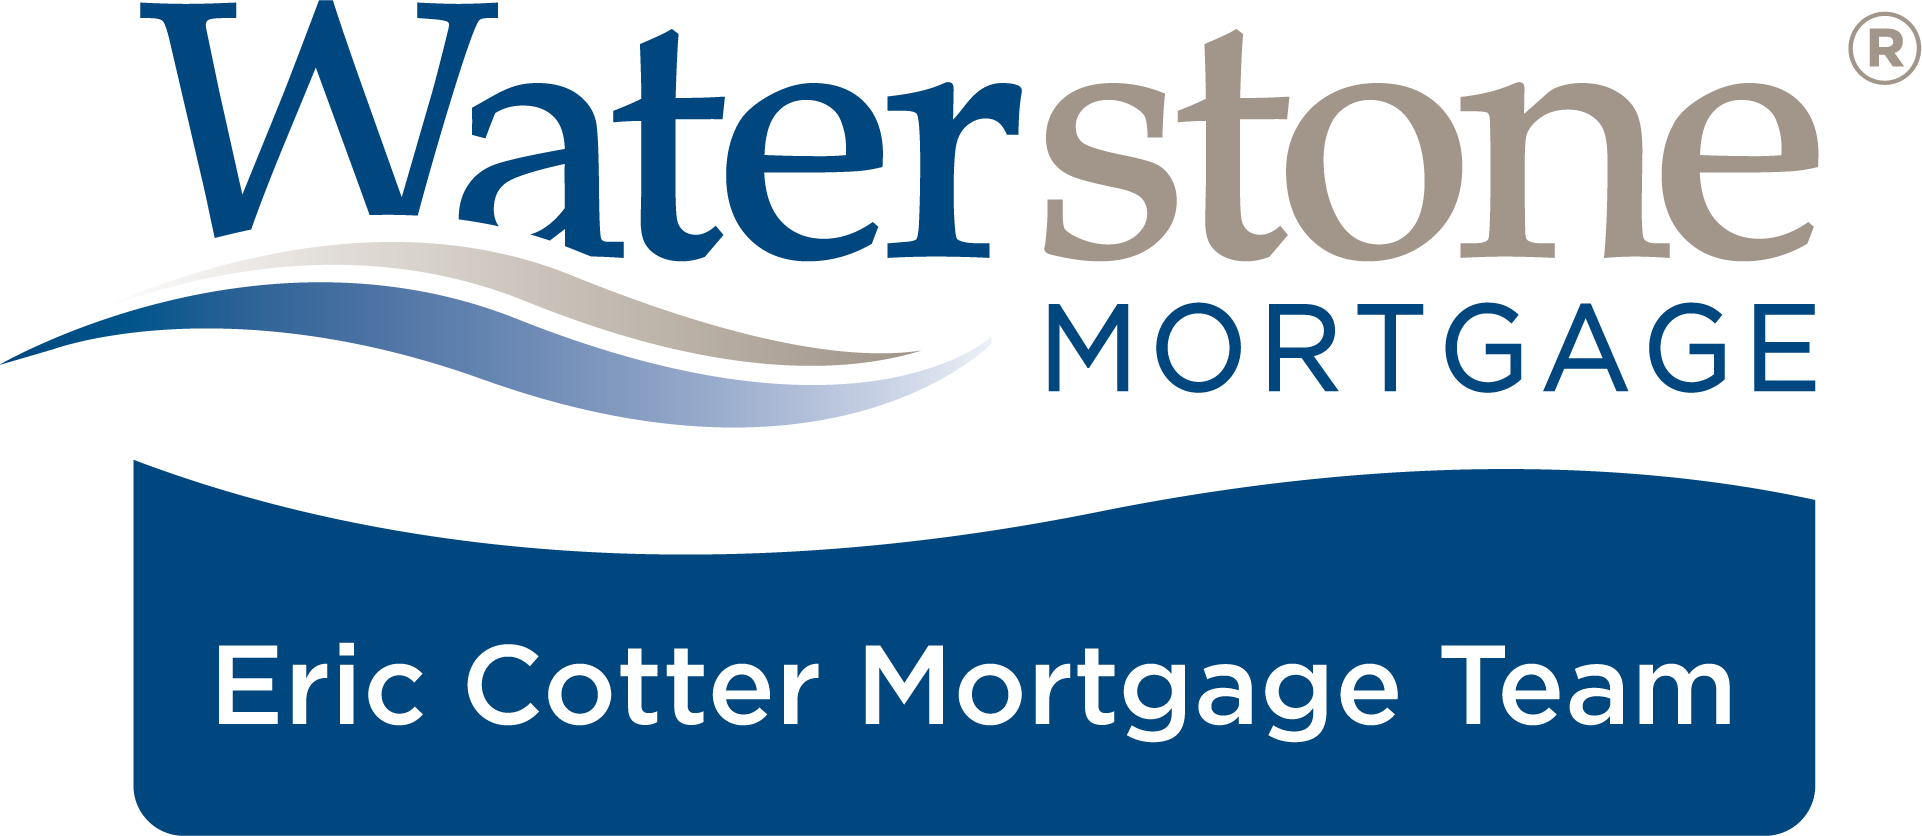 Eric Cotter Waterstone Mortgage Team